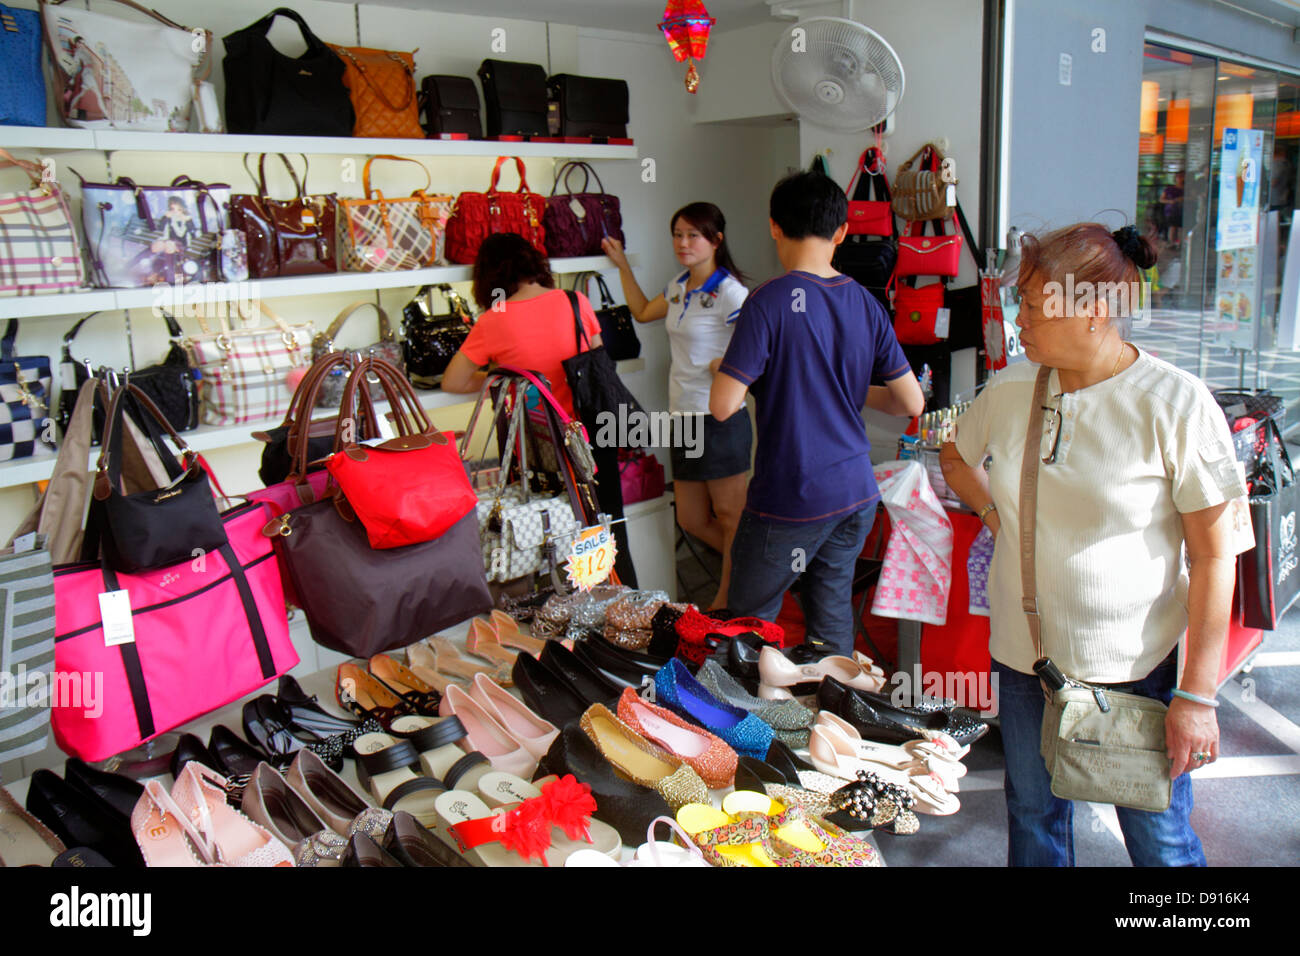 556afb3af60c Singapore Kallang Road Asian woman shopping women s shoes handbags for sale